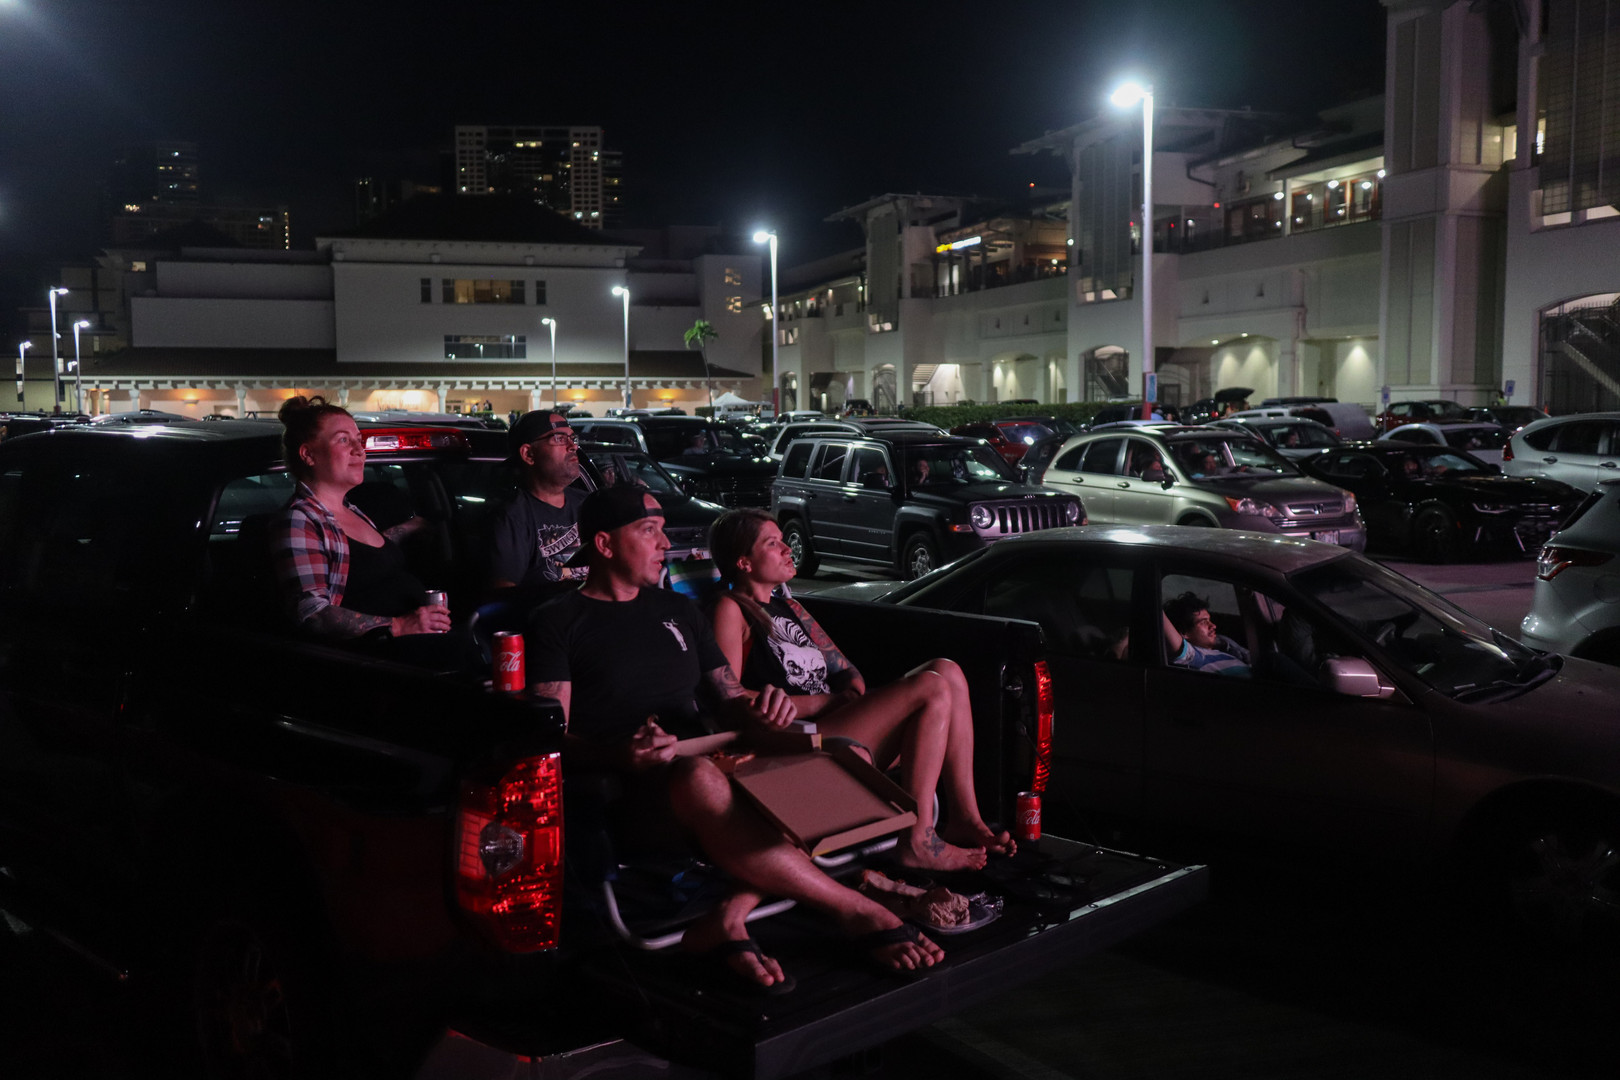 Todd Week, Casey Week, Jen Valles, Marc Valles enjoys the movie from their truck in a drive-in movie by Aloha Drive-In Movies at Ala Moana Center on October 30, 2020. Aloha Drive-In movies in partnership with Hawaii International Film Festival transformed the parking section between Neiman Marcus and Macy's at Ala Moana Center into an outdoor theater. The viewing space feature a 30-foot LED screen, with enough space to fit 83 vehicles, socially distanced.